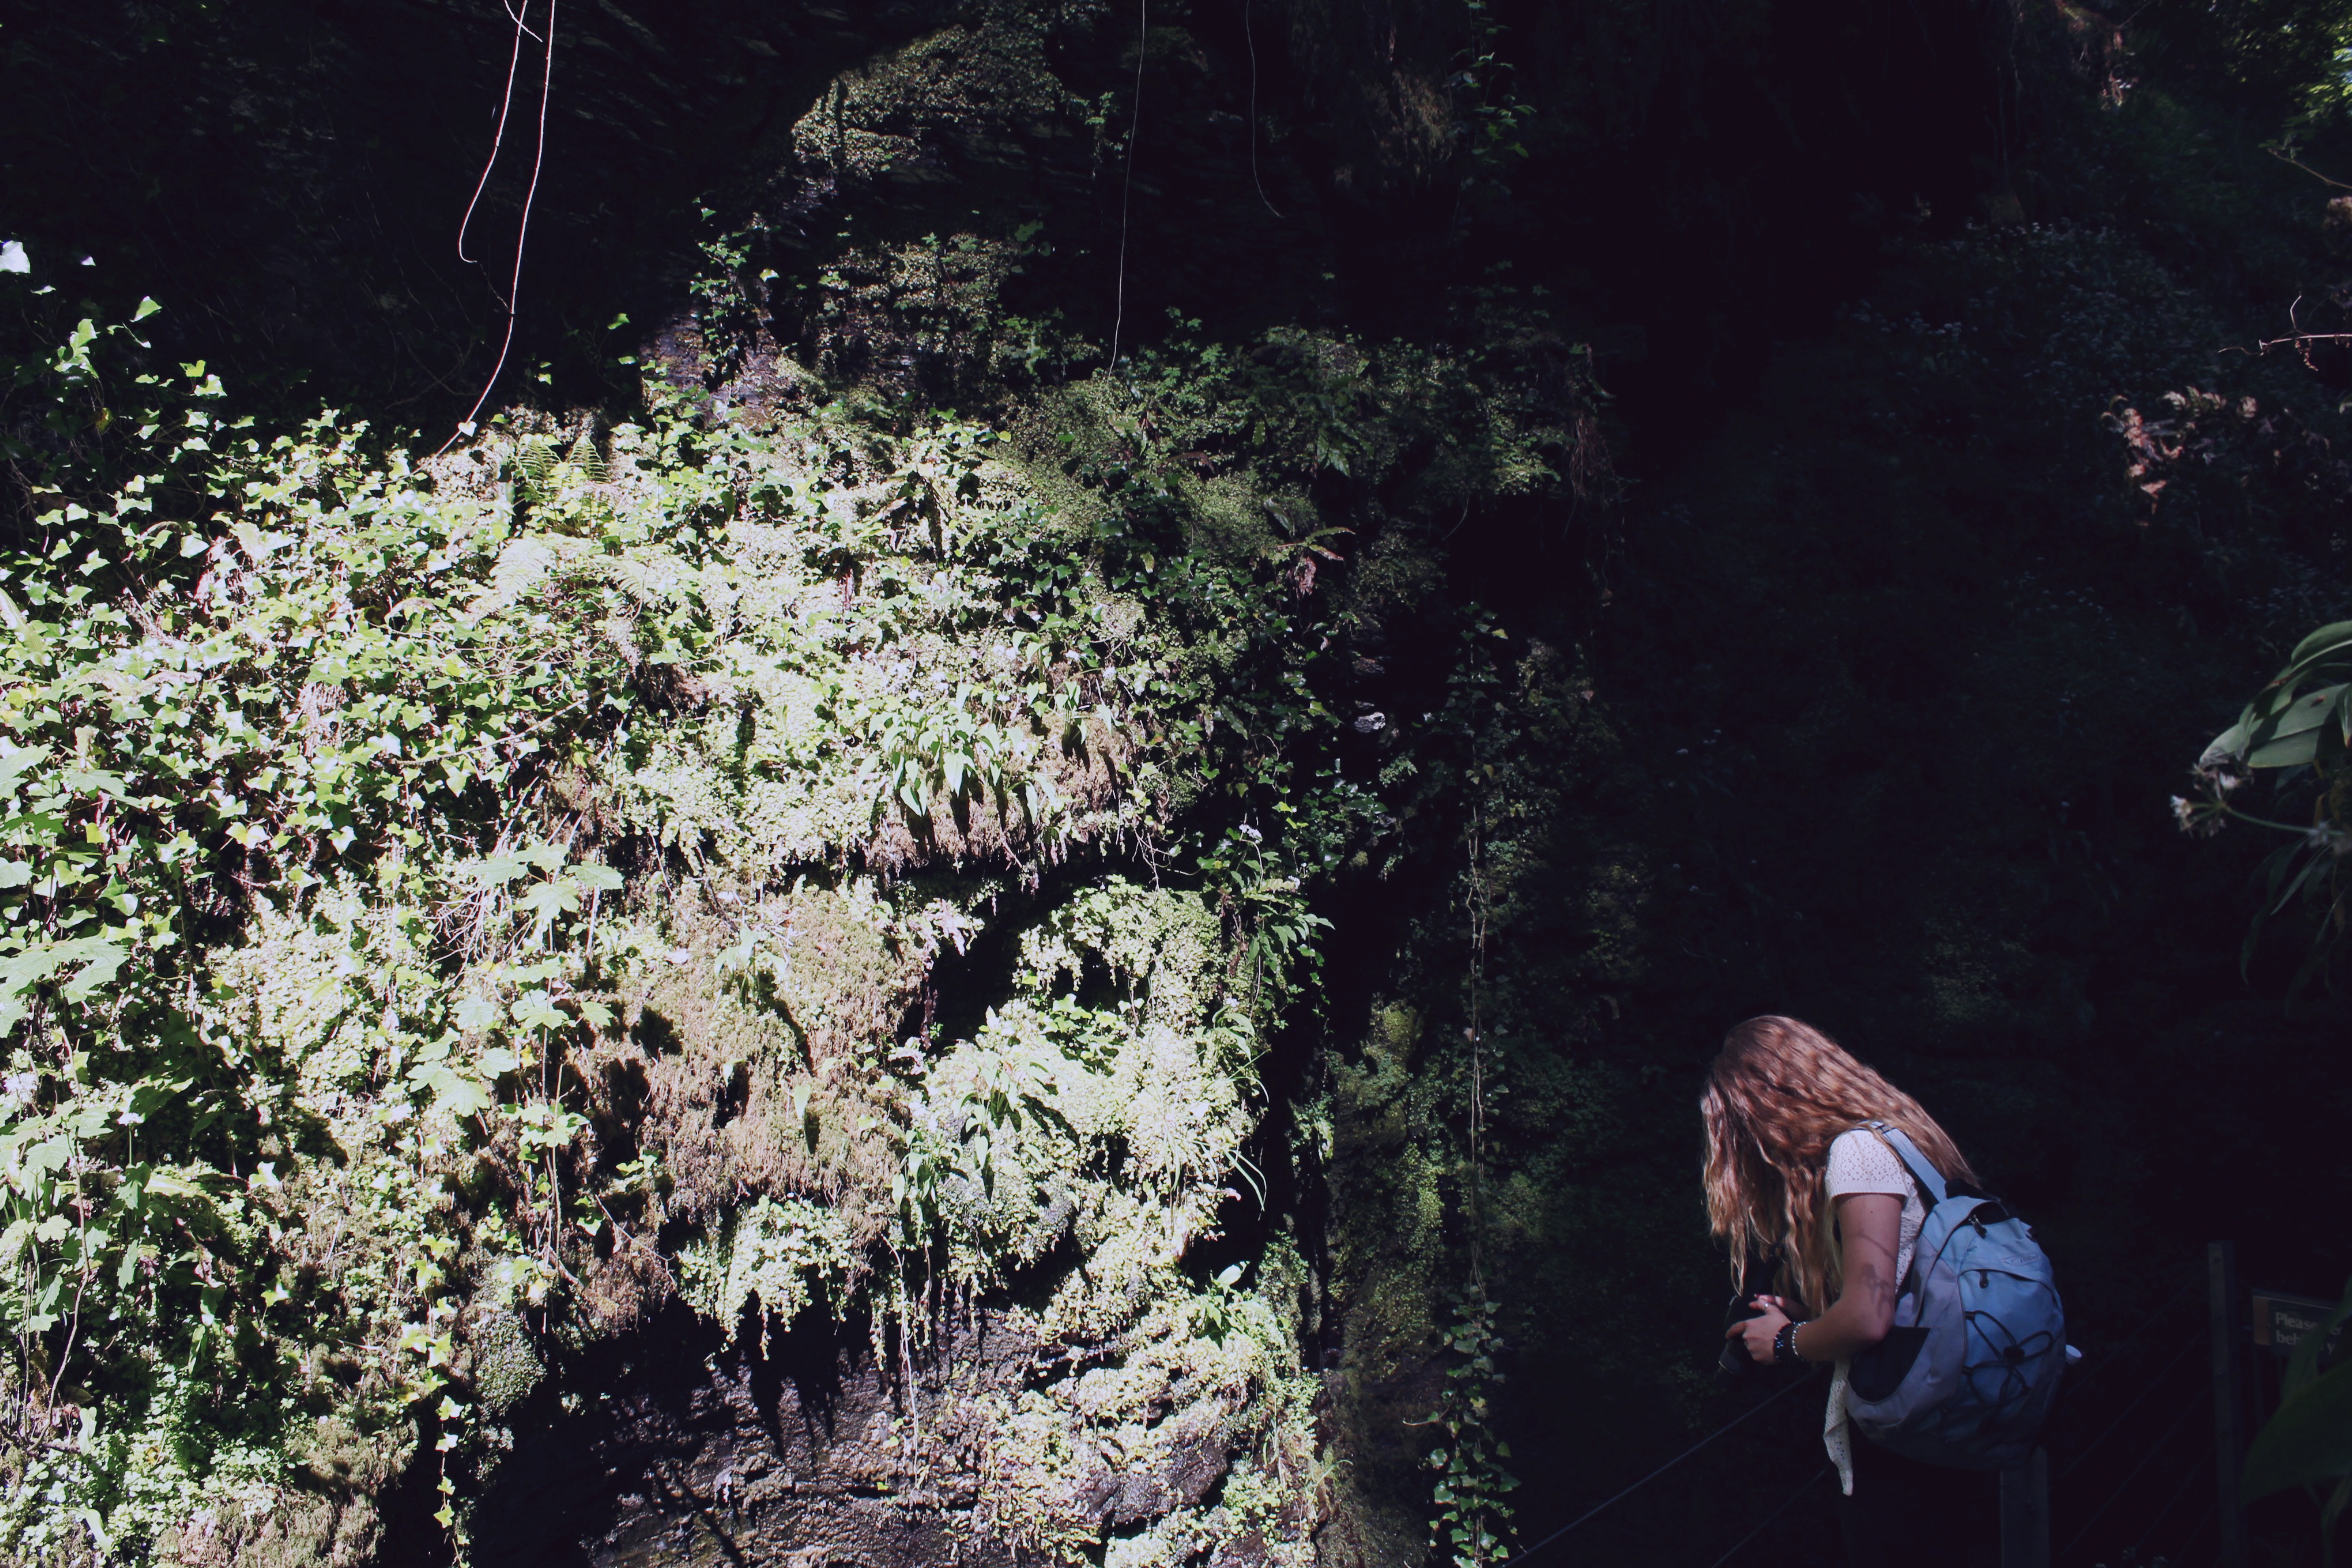 Sarah with a backpack taking a photo at Lydford Gorge, Devon